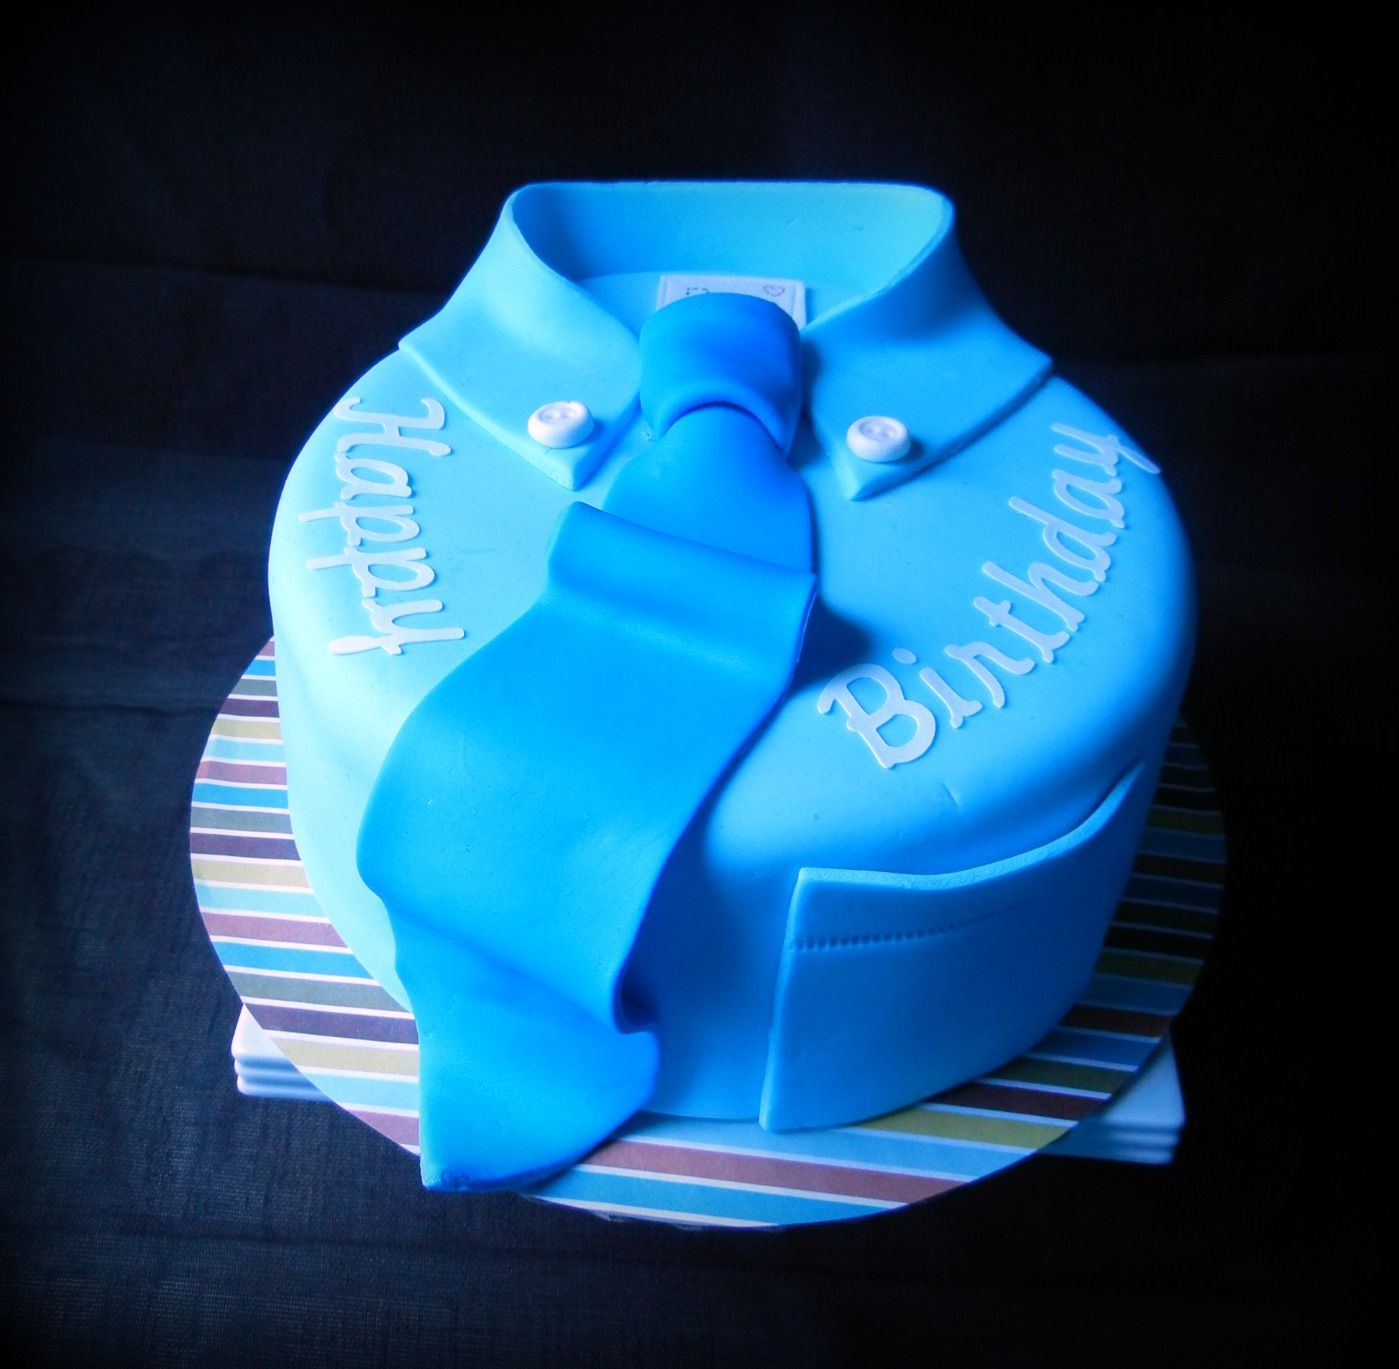 Cake For A Manbirthdaycolleague Farewellfathers Day Etc - Birthday cake for a guy